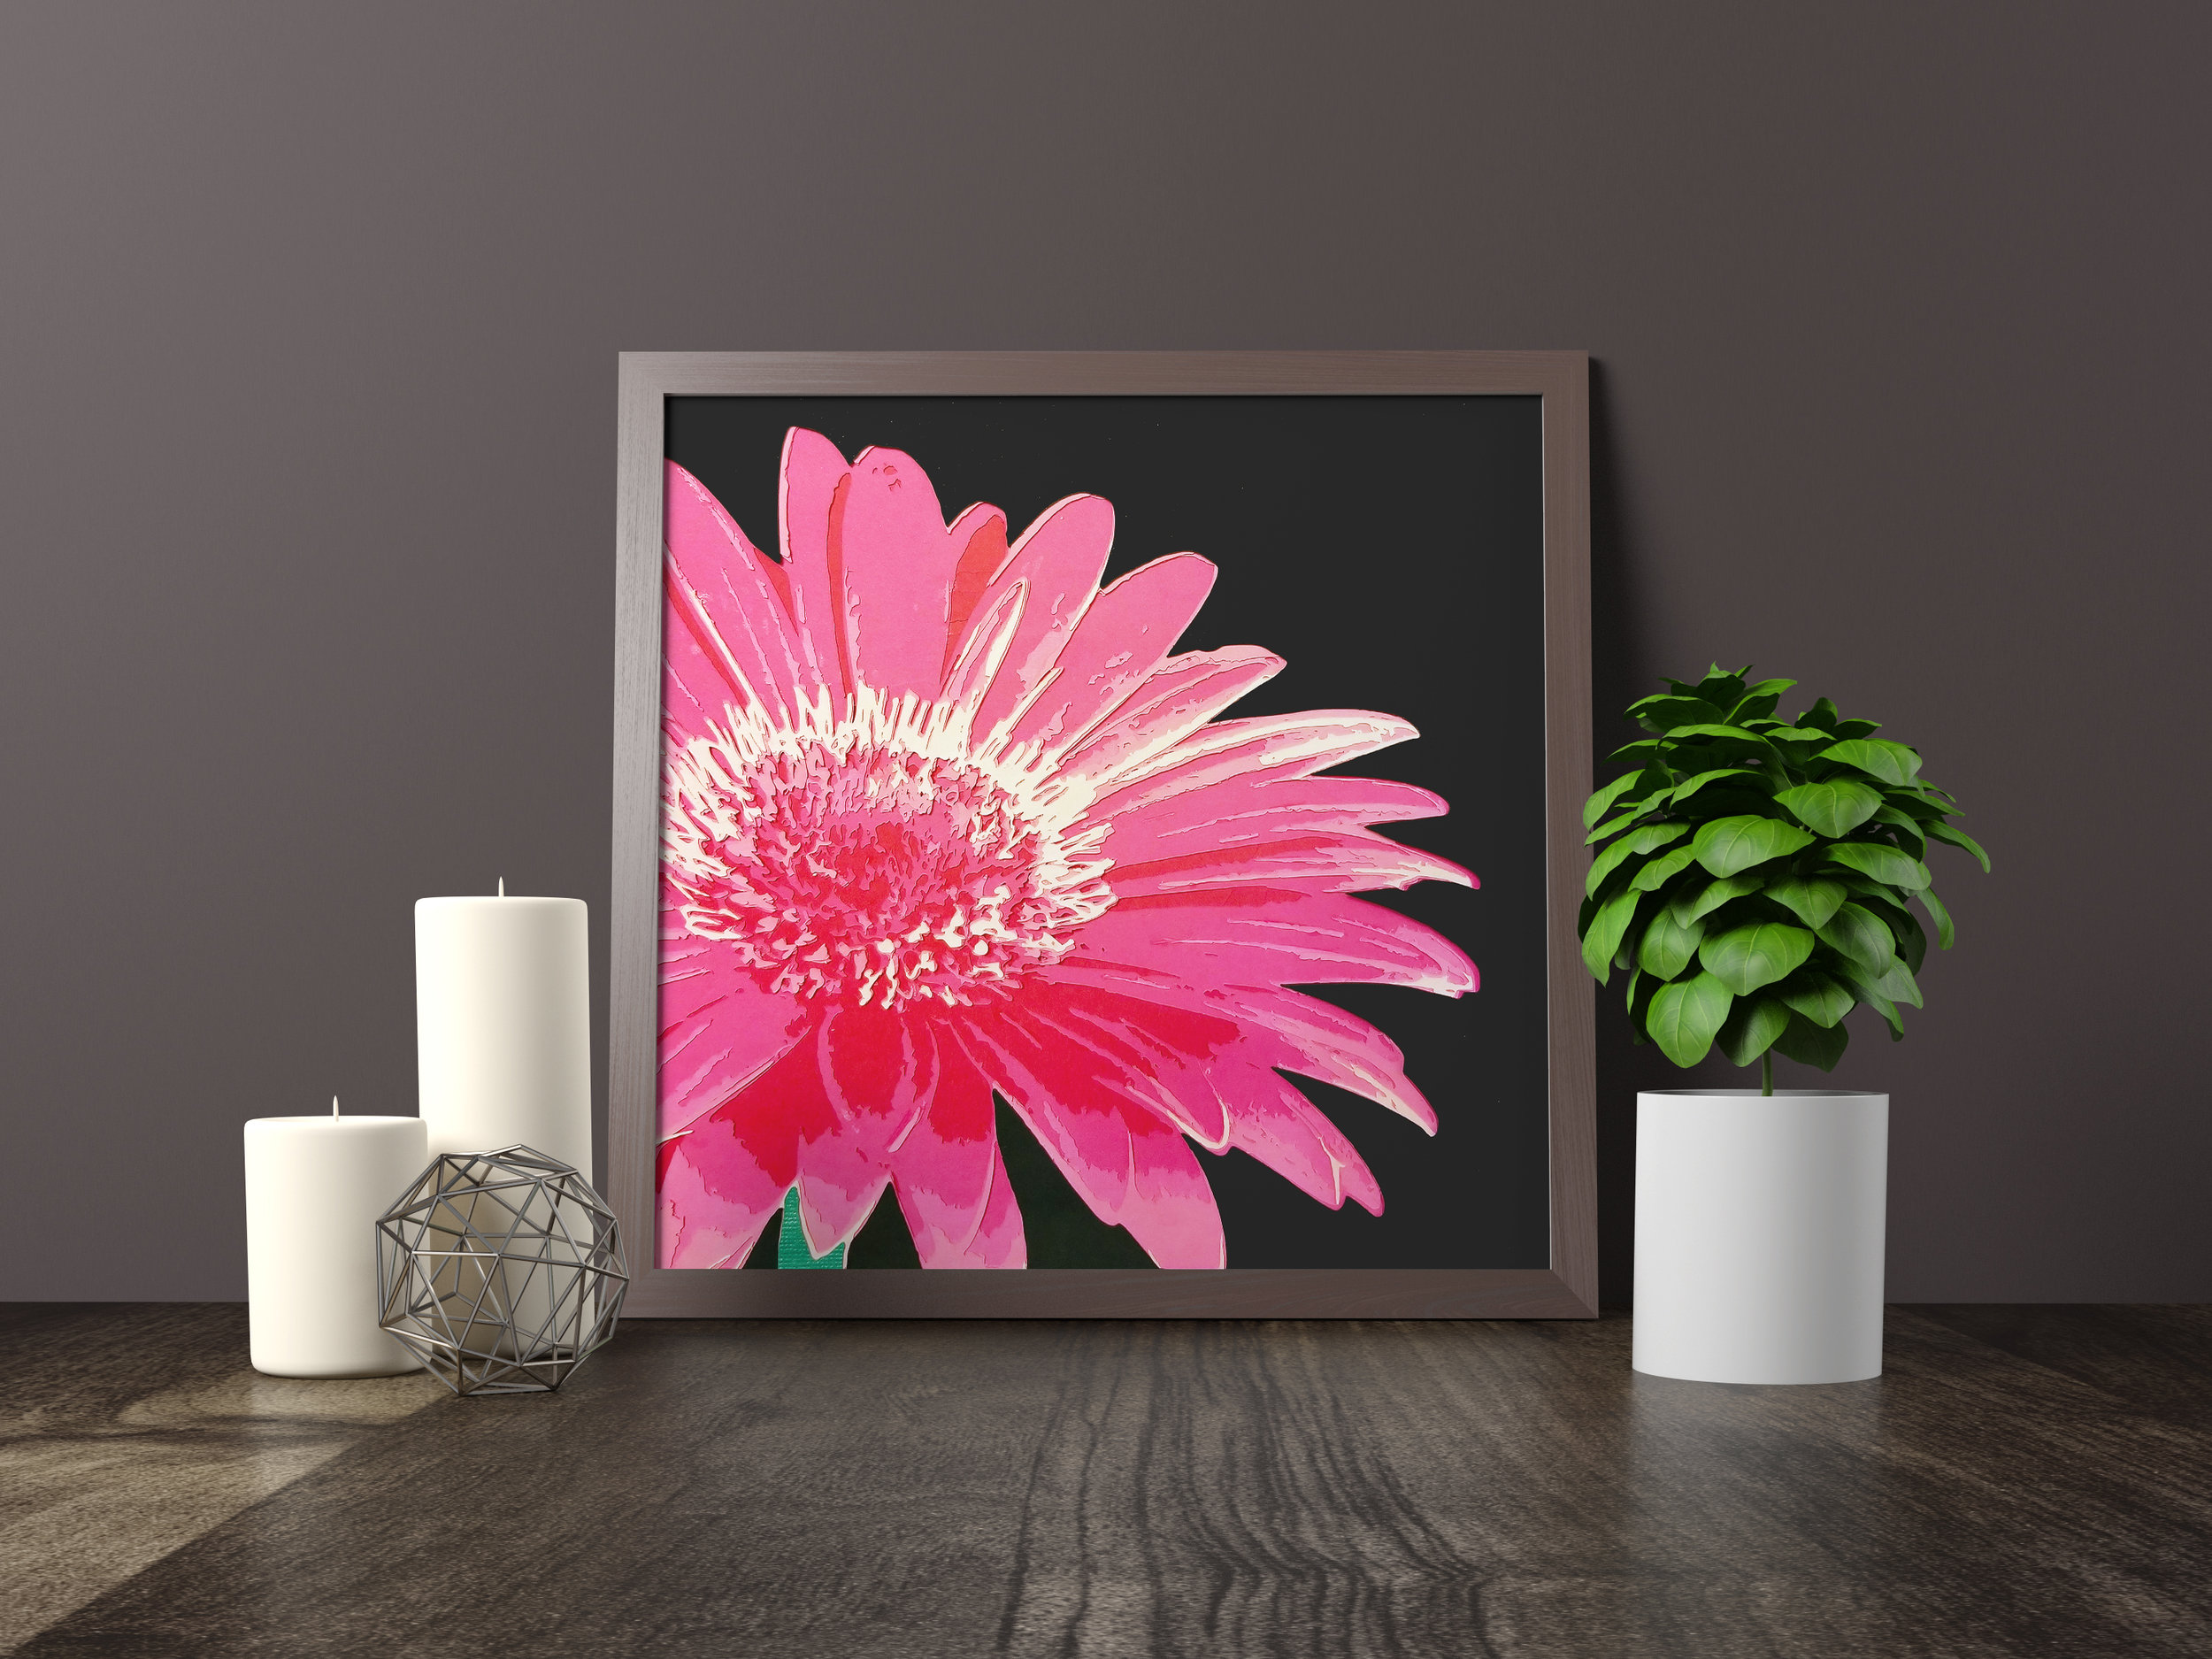 SPRING GERBERA - Featured on the front cover of the April 2018 edition of Edge MagazineOriginal artwork *SOLD*12